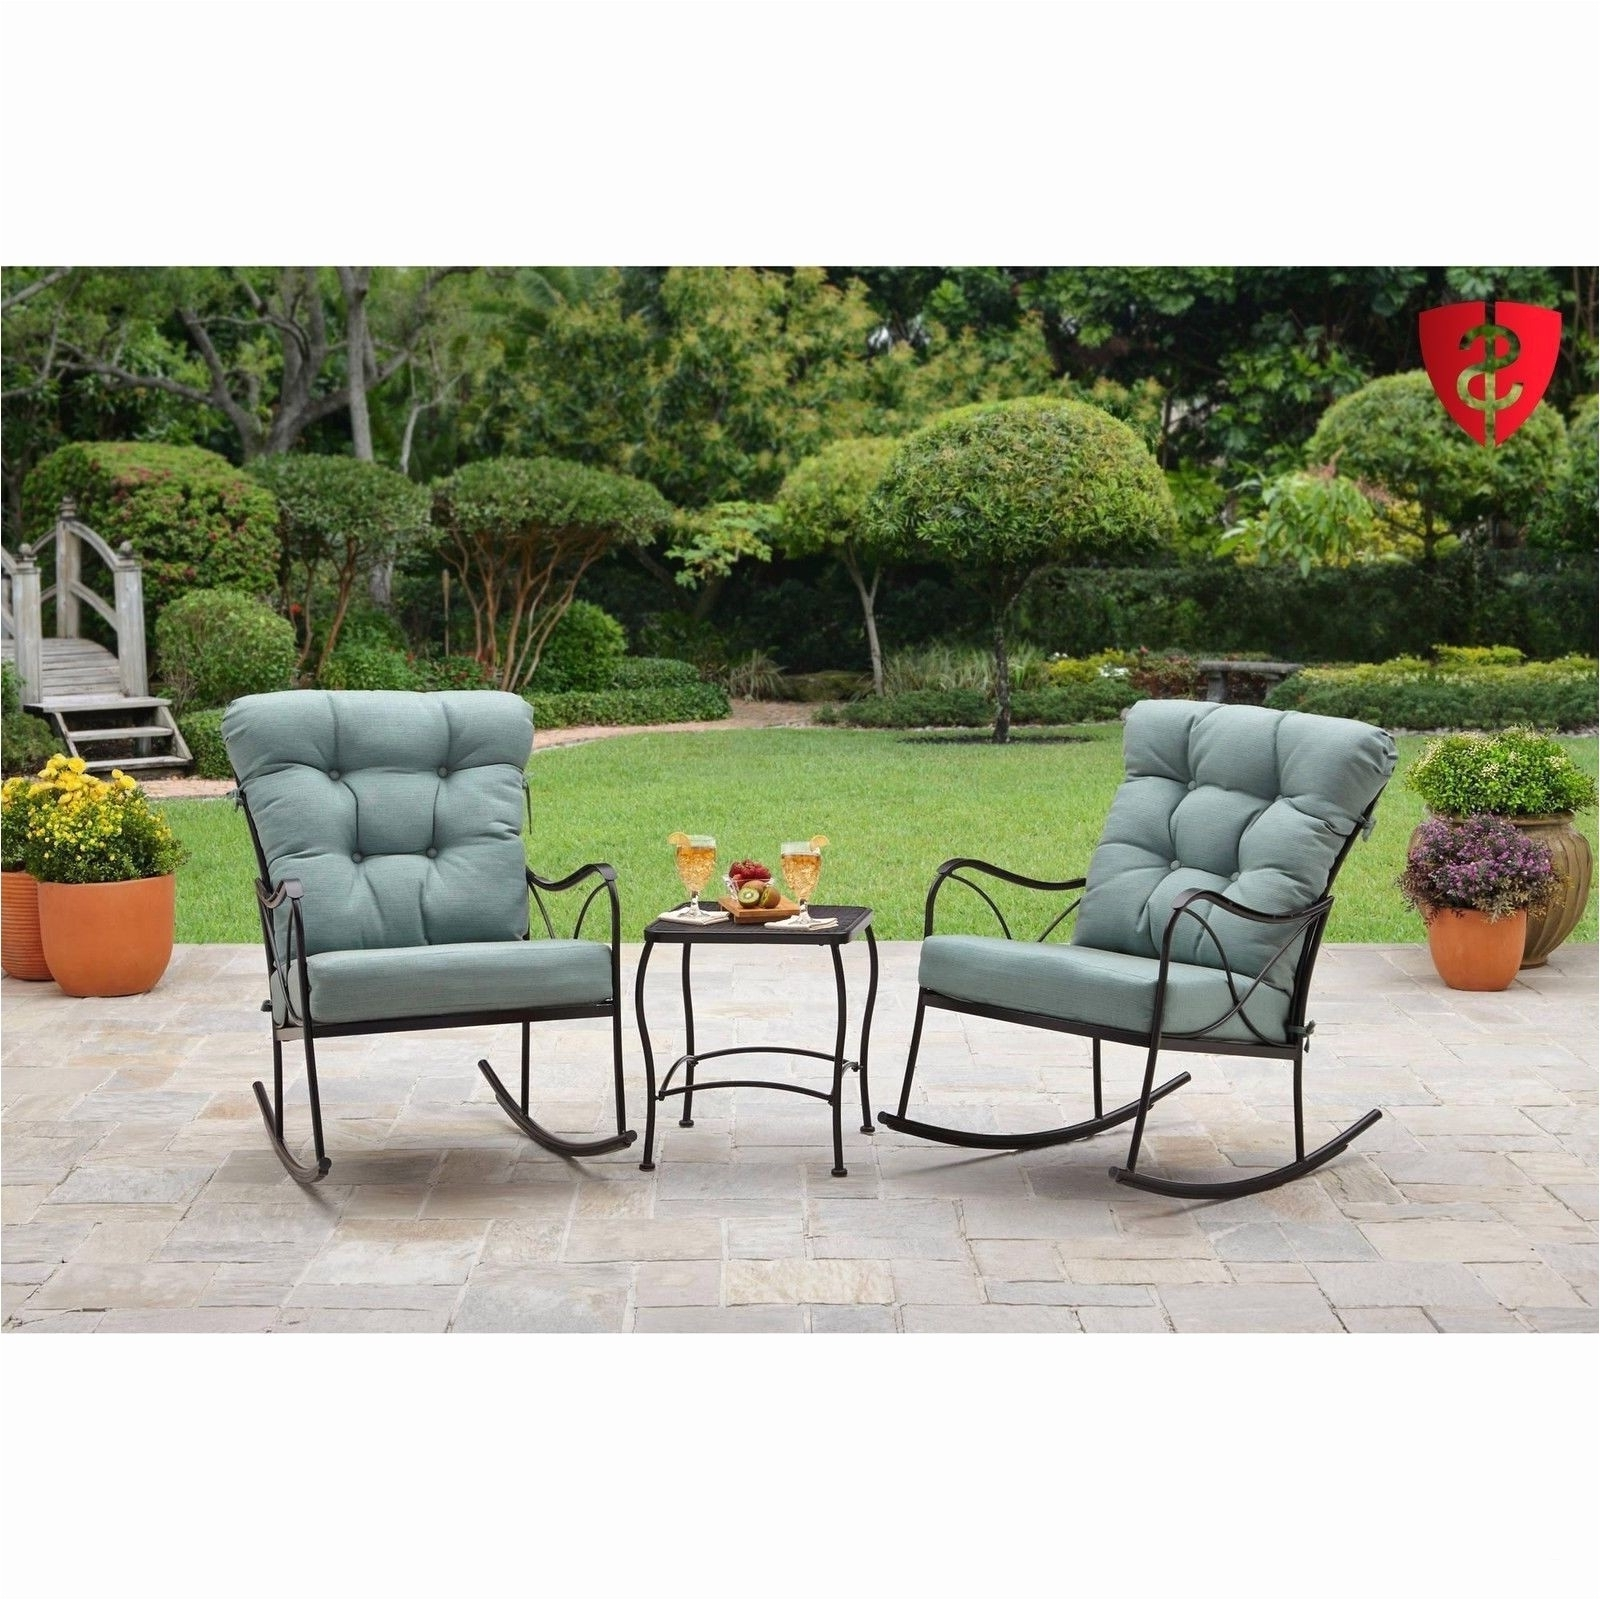 Most Popular Patio Conversation Sets Under 200 Inside Cheap Patio Furniture Sets Under 200 Exclusive The Best Outdoor (View 7 of 15)